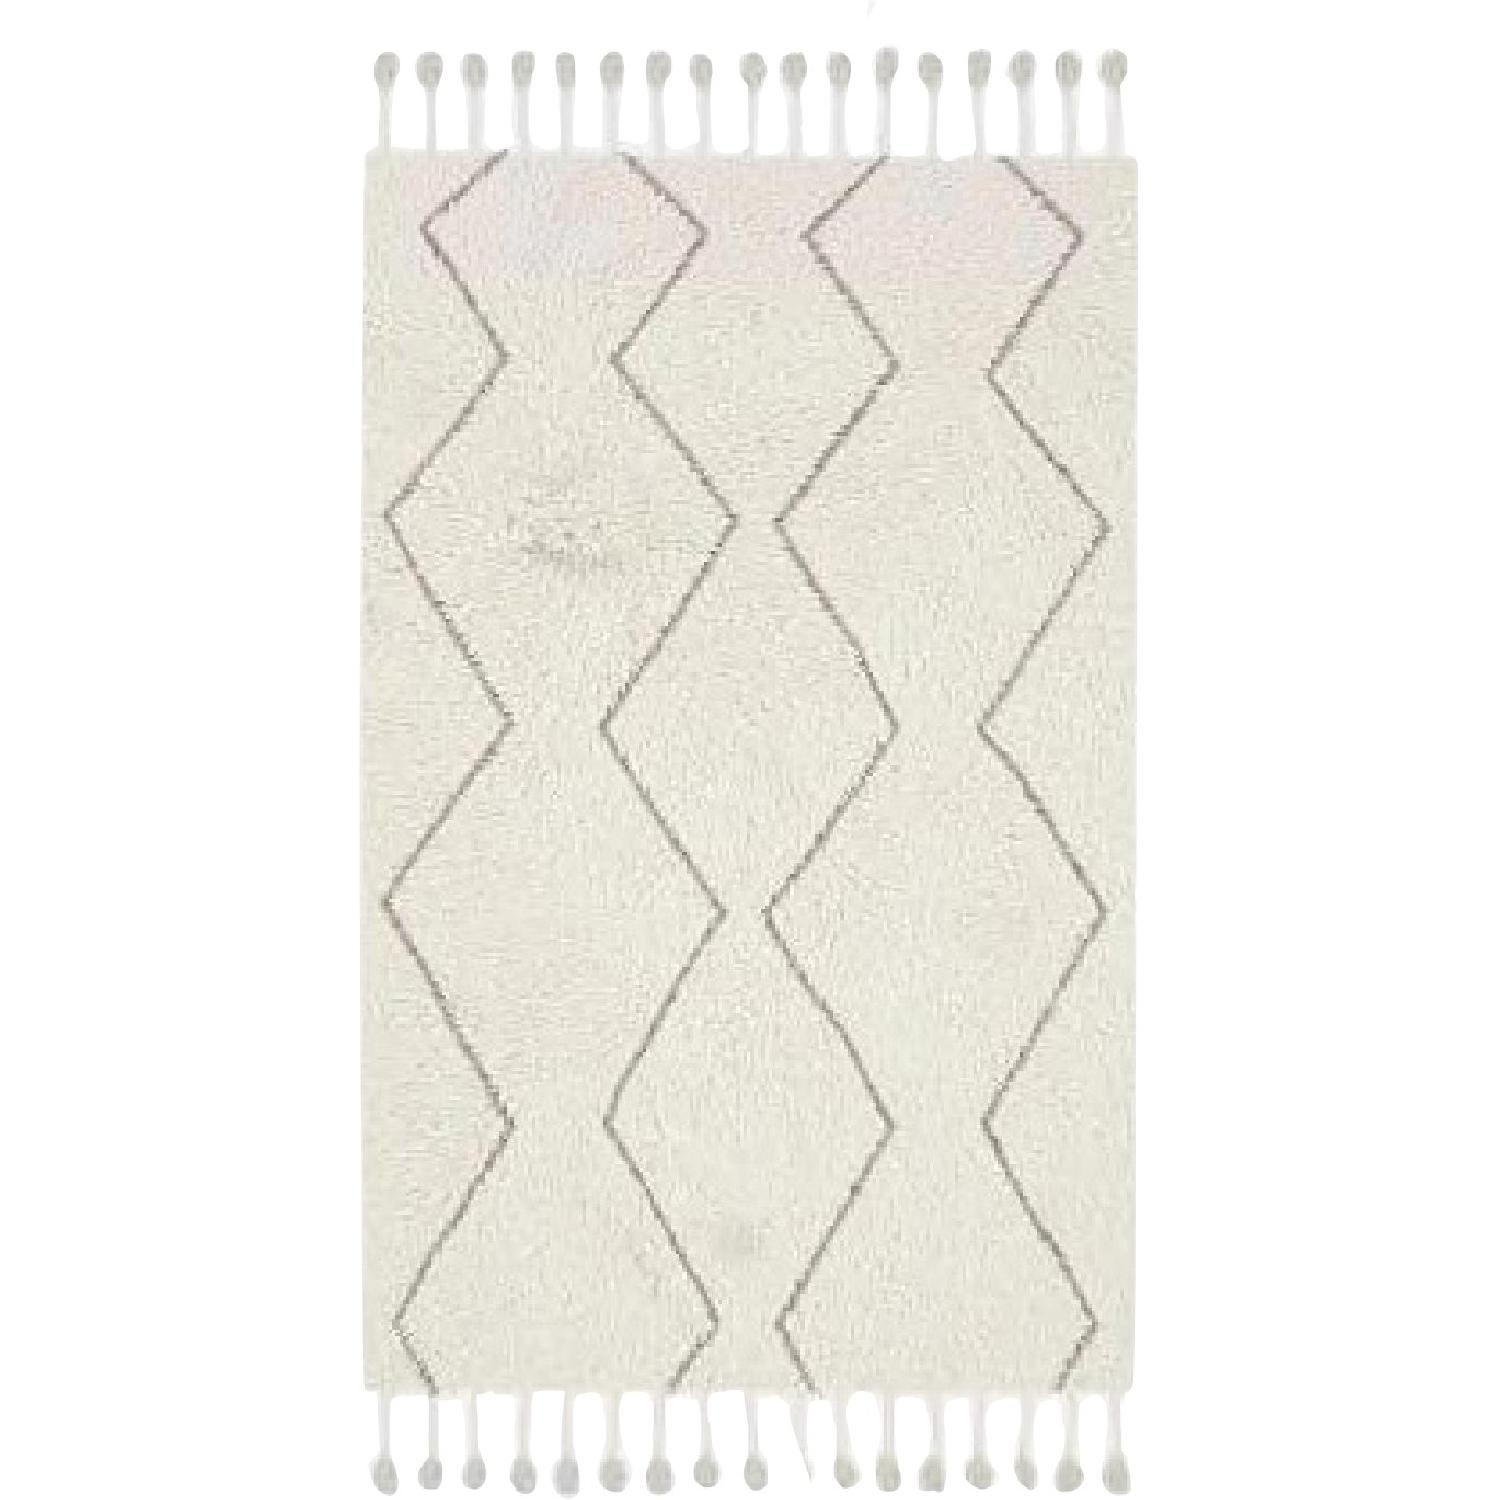 West Elm Souk Wool Rug in Natural